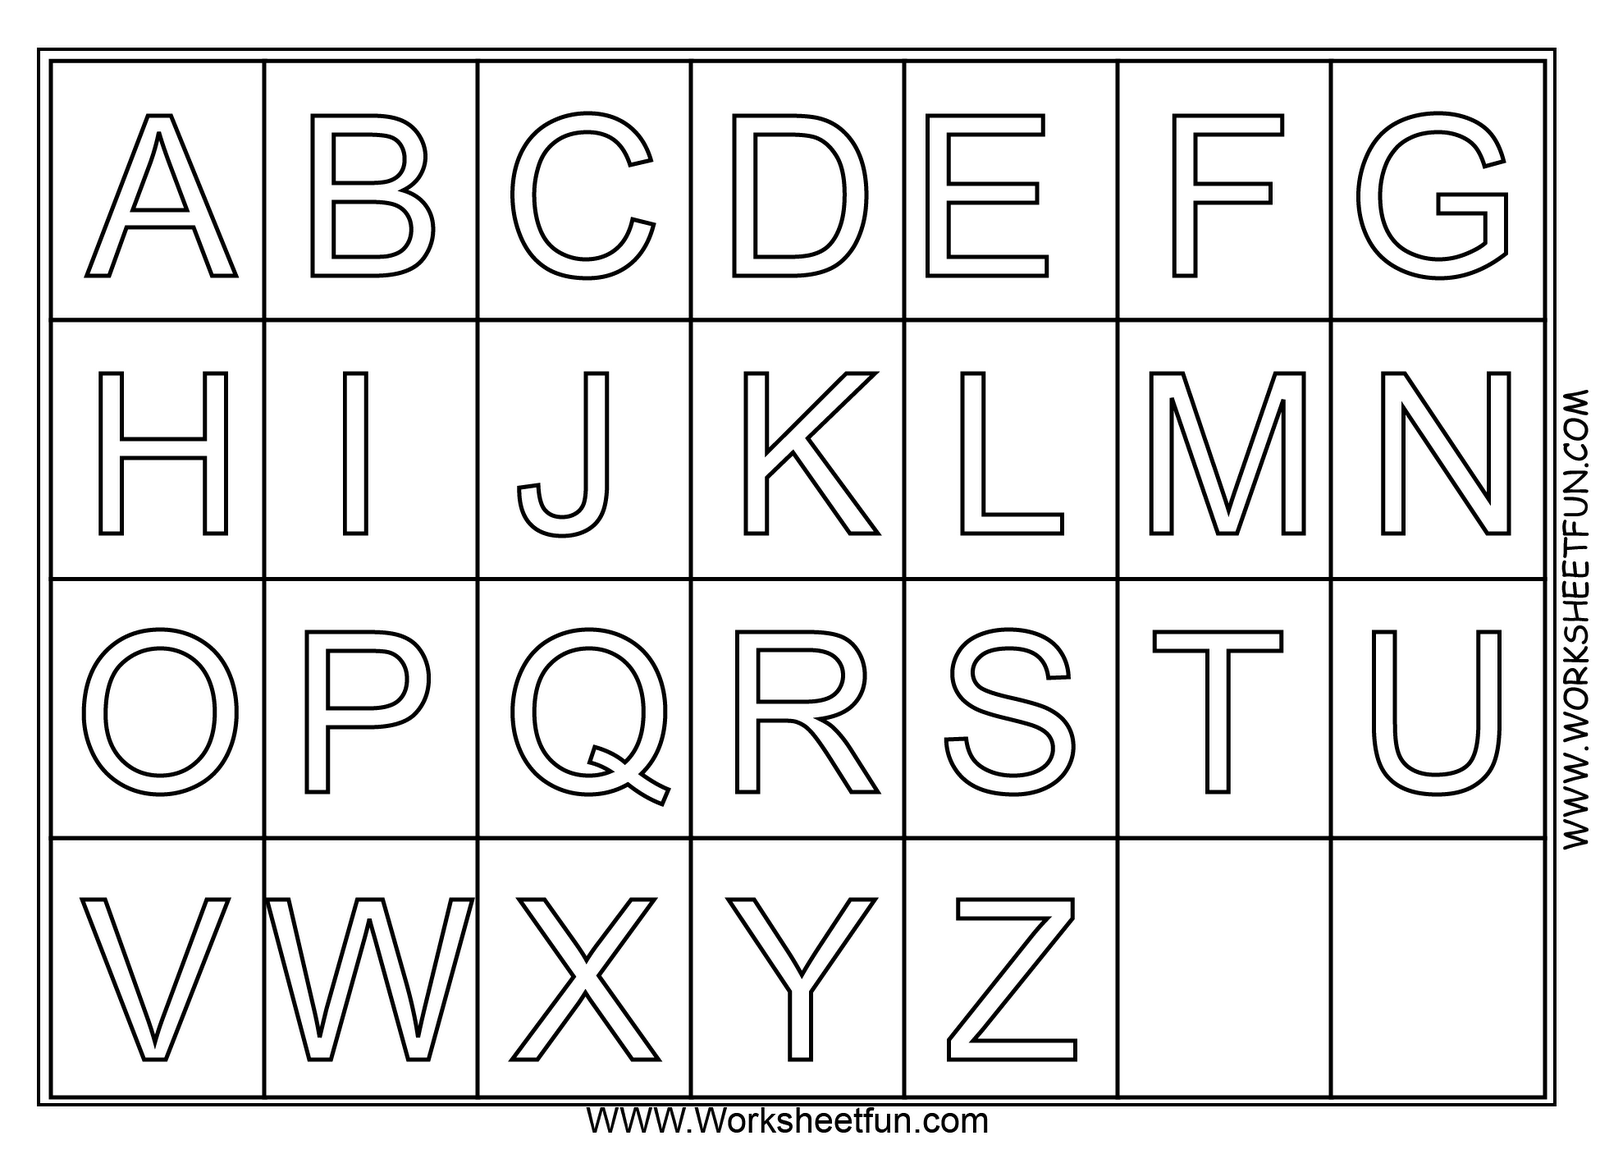 Printables Preschool Abc Worksheets 1000 images about prek on pinterest worksheets for kindergarten preschool and math worksheets